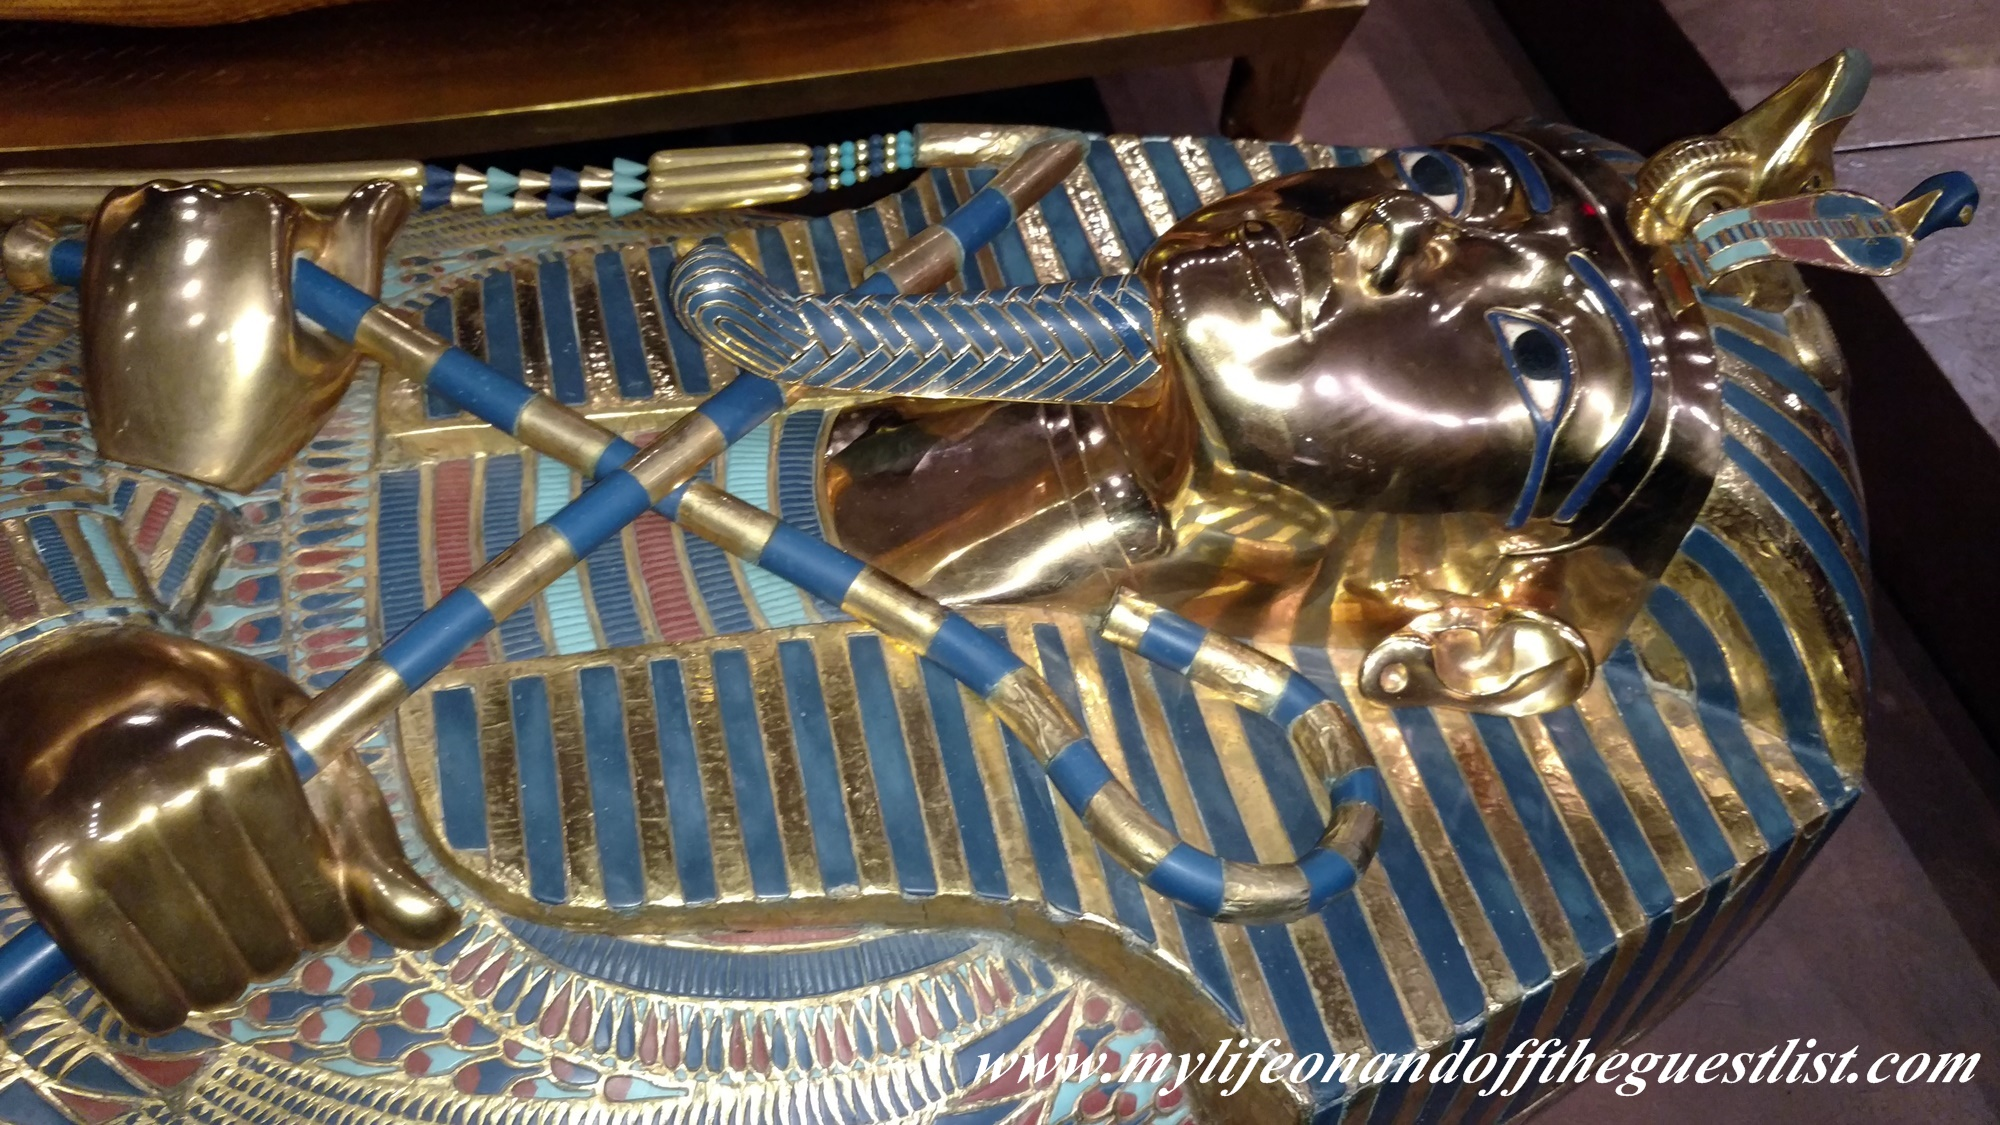 The_Discovery_of_King_Tut_NYC_Coffin_www.mylifeonandofftheguestlist.com